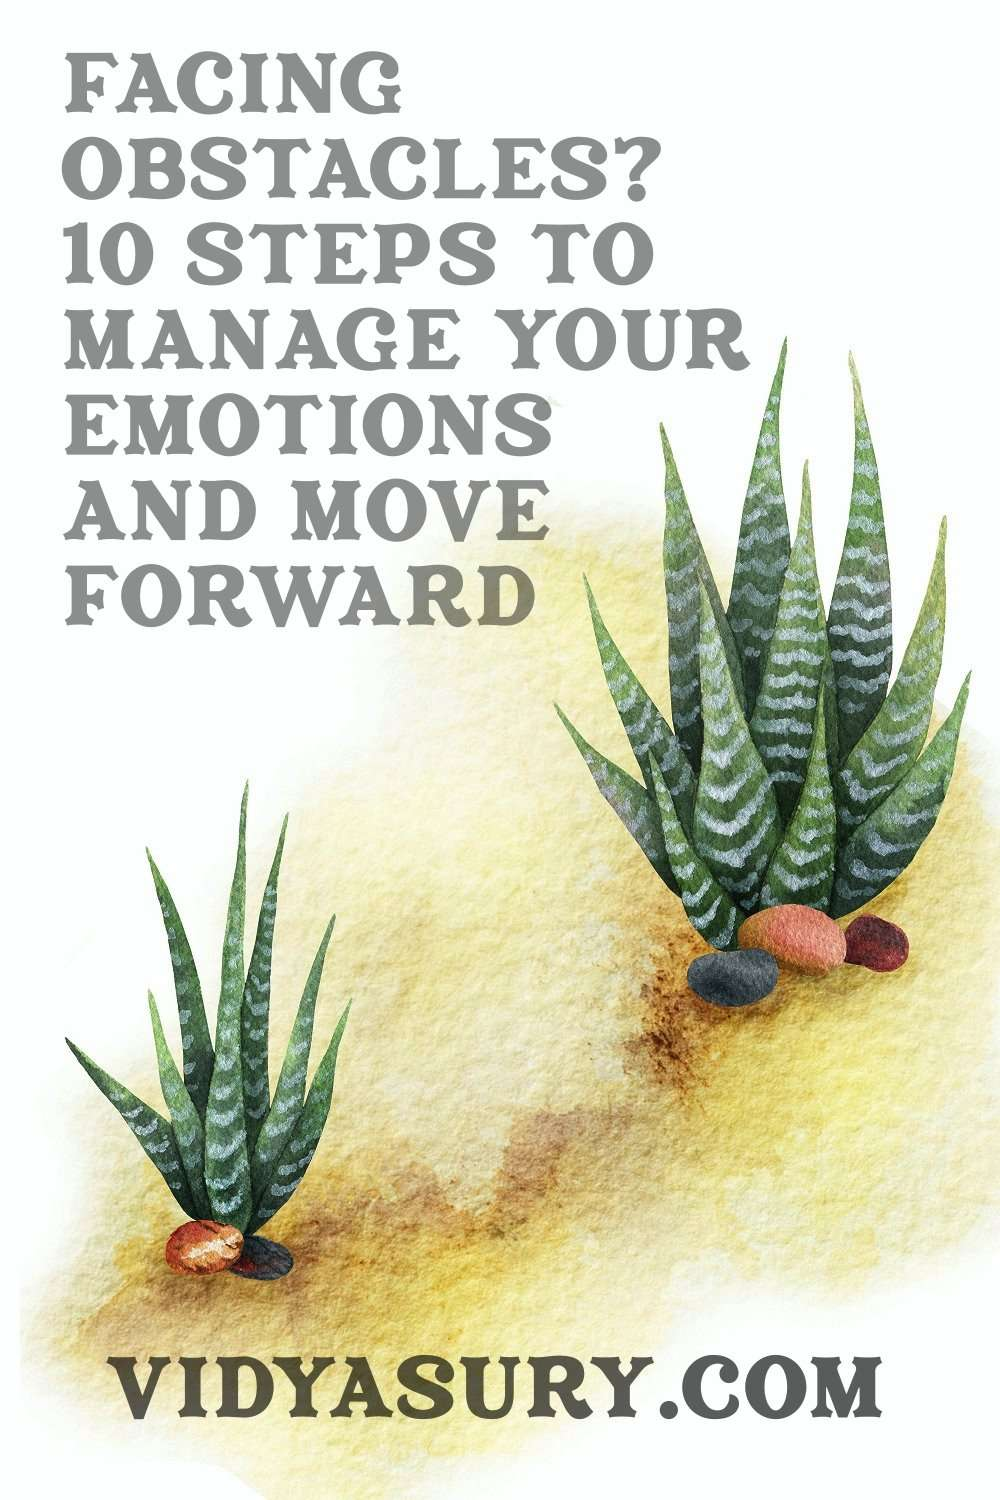 Facing Obstacles 10 steps to manage emotions